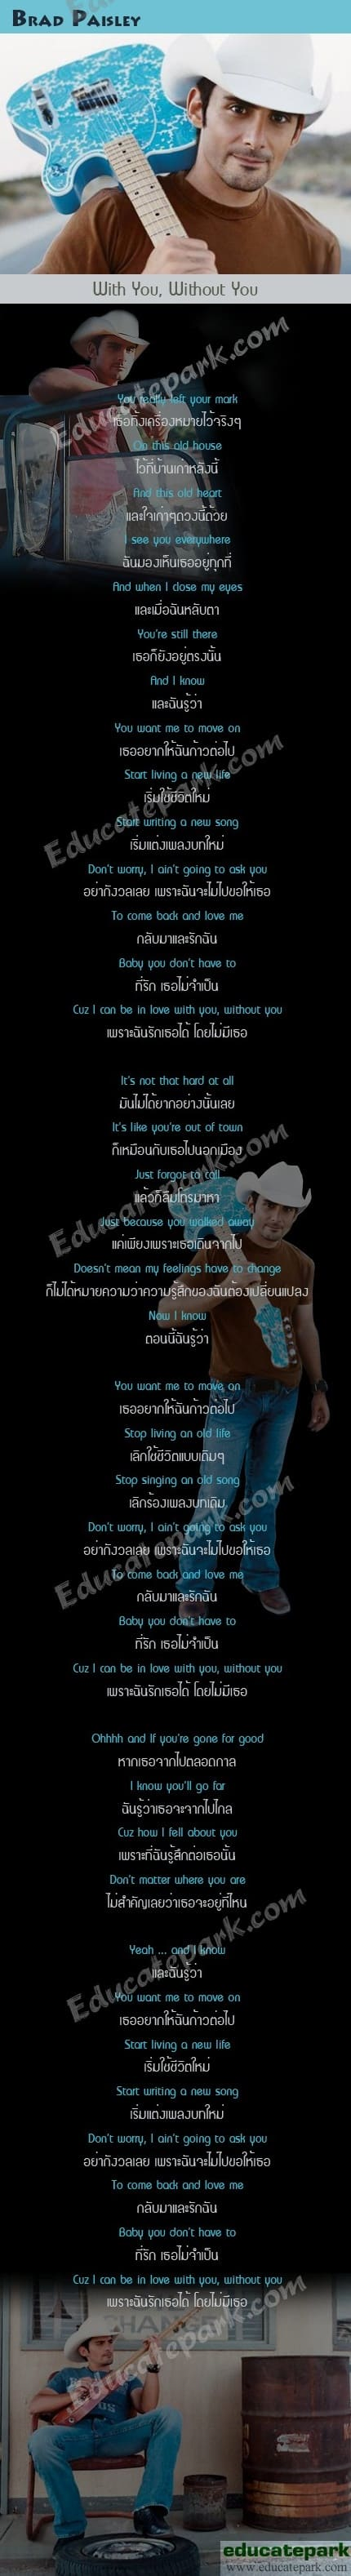 แปลเพลง With You Without You - Brad Paisley